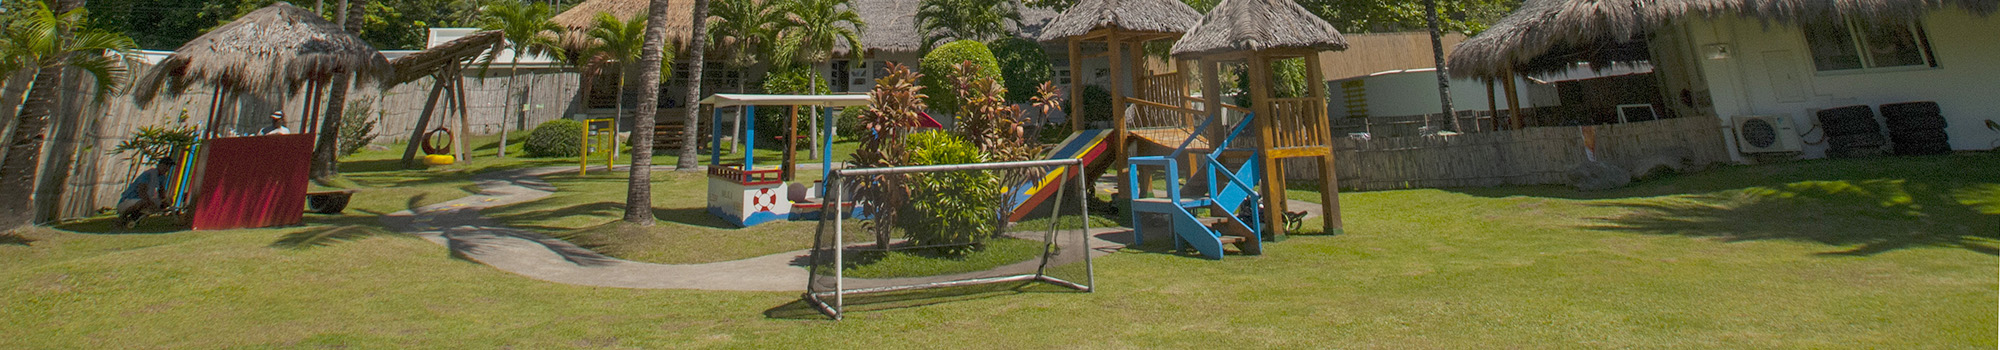 Playground at Atmosphere Resort Philippines